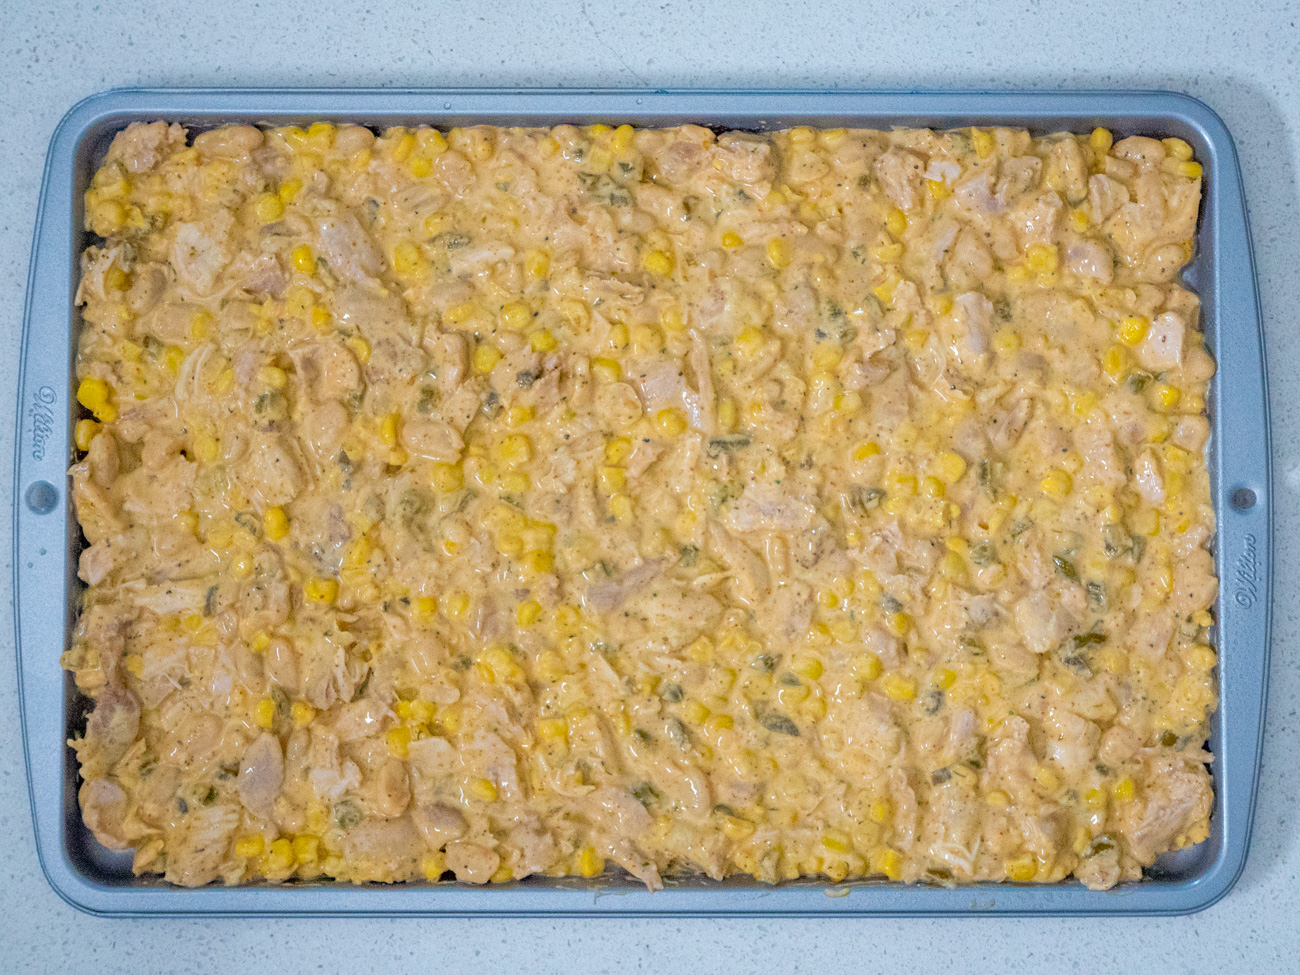 Cut chicken into 1-inch pieces. Stir chicken into chili mixture. Spread evenly on sheet pan.